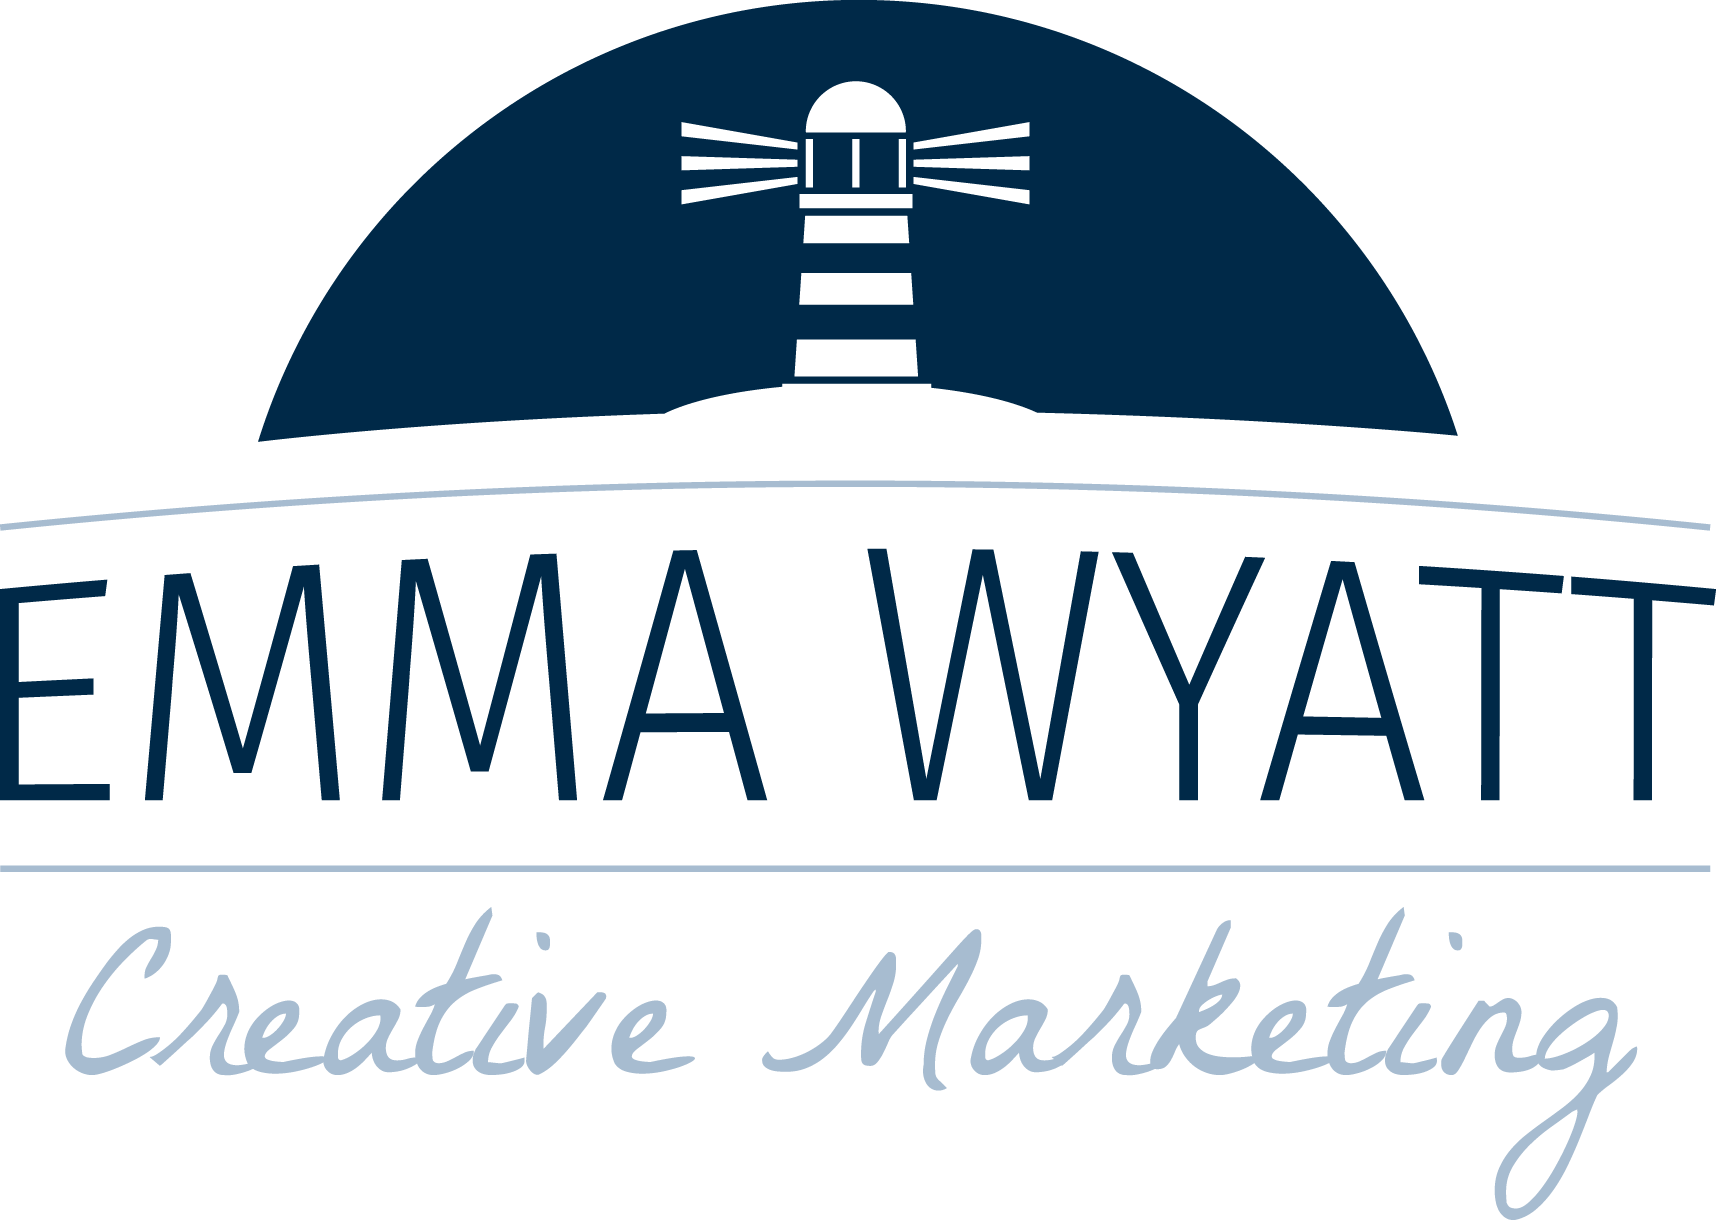 Emma Wyatt Creative Marketing